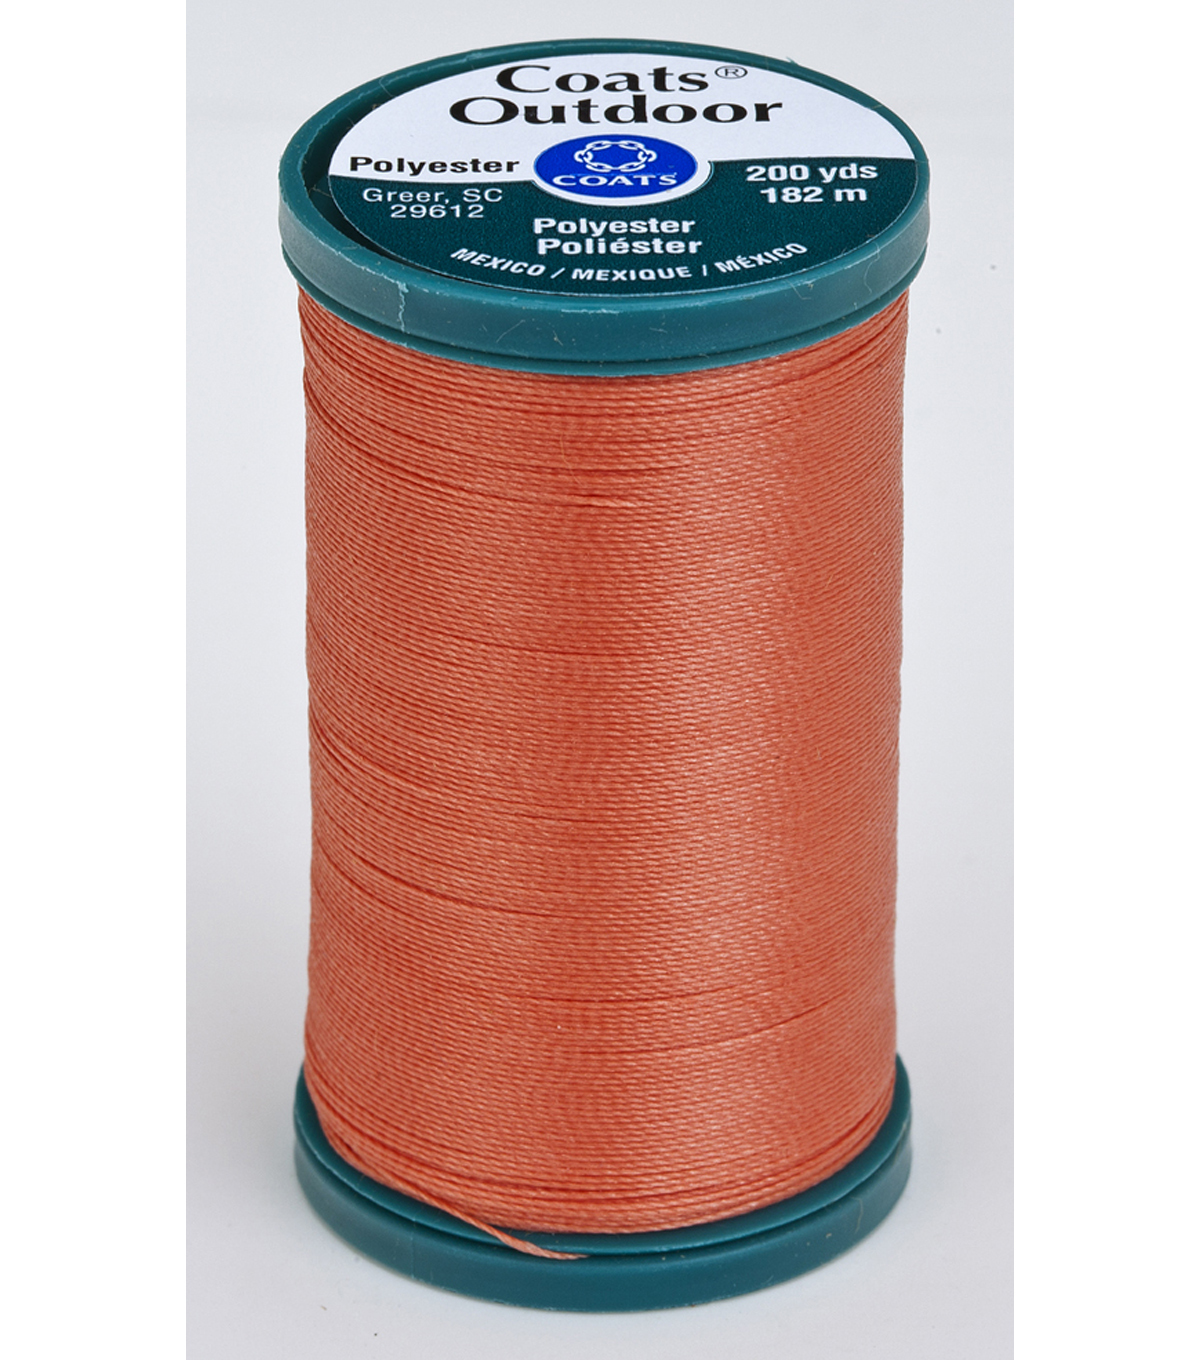 Coats & Clark Outdoor 200yd Thread, Coats Outdoor 200yd Coral